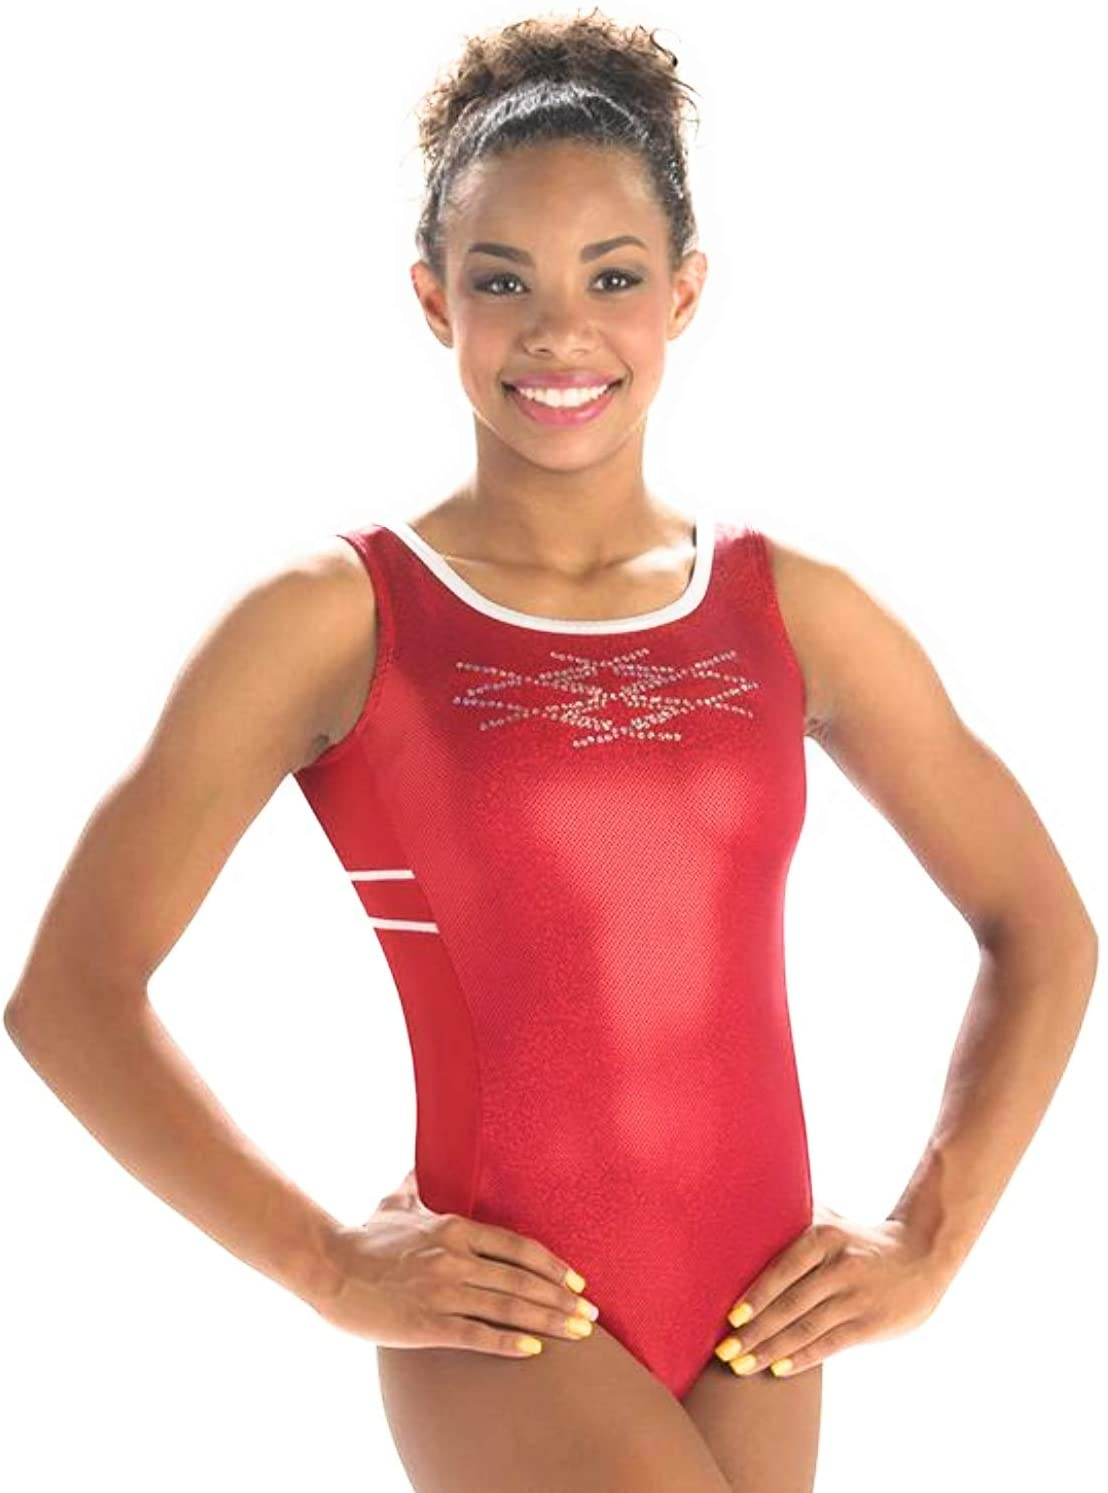 GK Elite Red Sparkle Tank Holiday Leotard Adult X-Small AXS